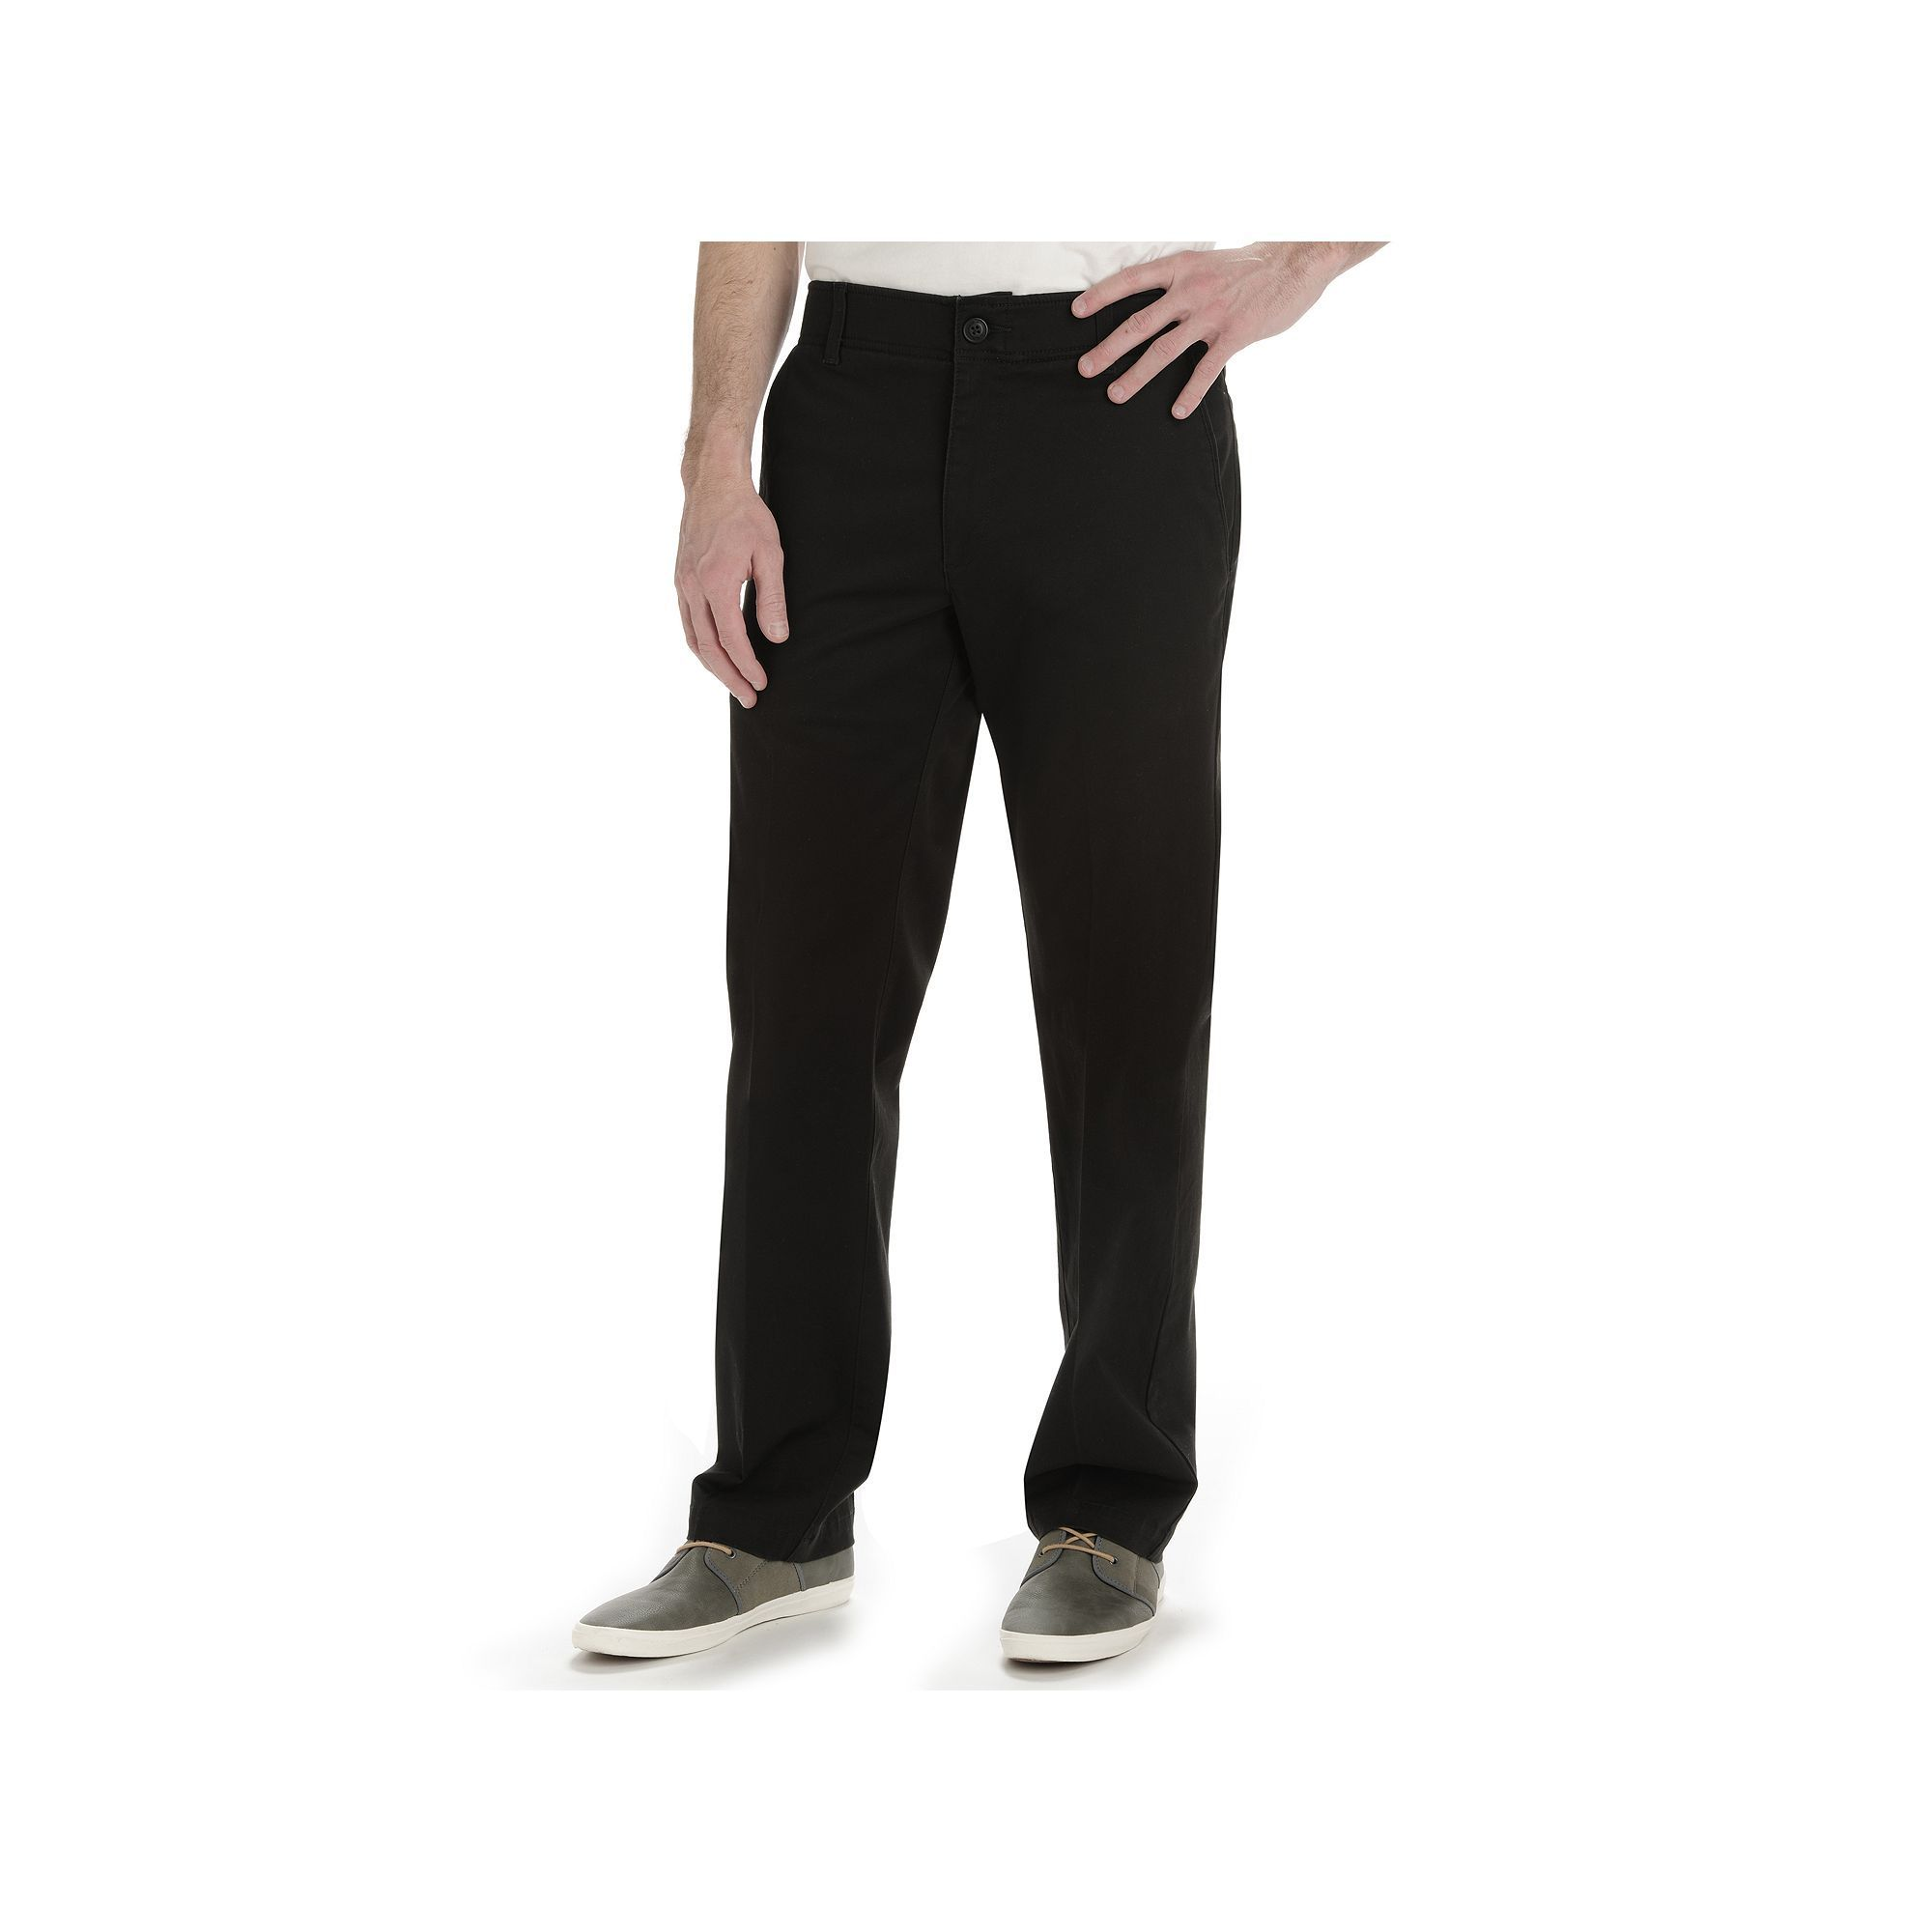 LEE Mens Big /& Tall Performance Series Extreme Comfort Pant